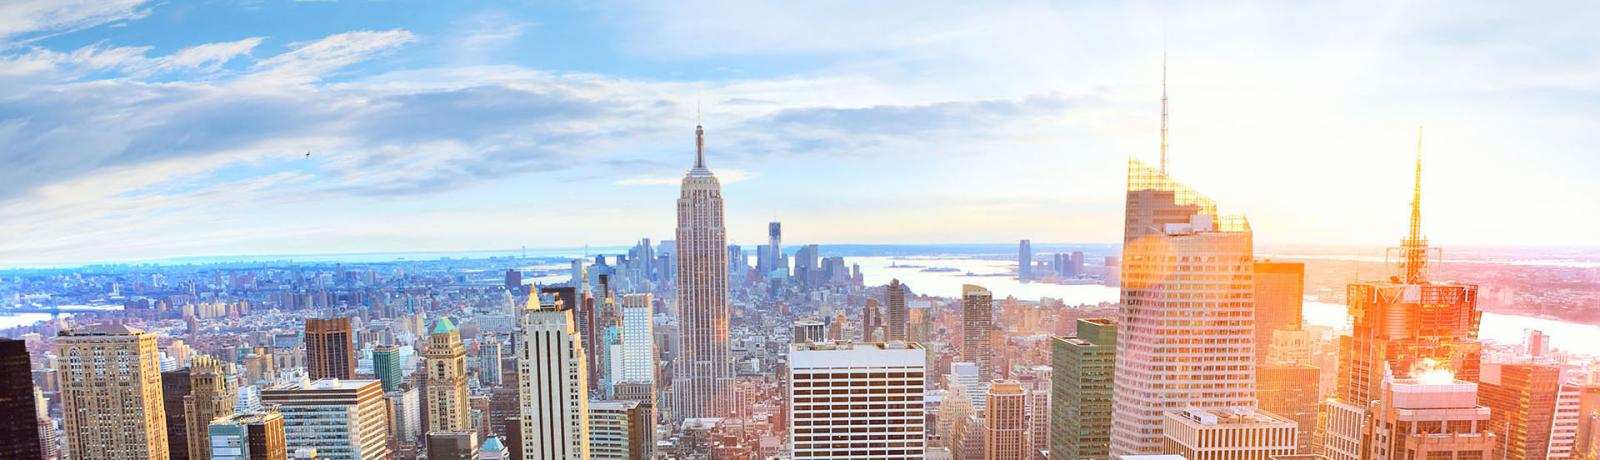 Die top 10 sehensw rdigkeiten in new york 2018 inkl for Famous cities in new york